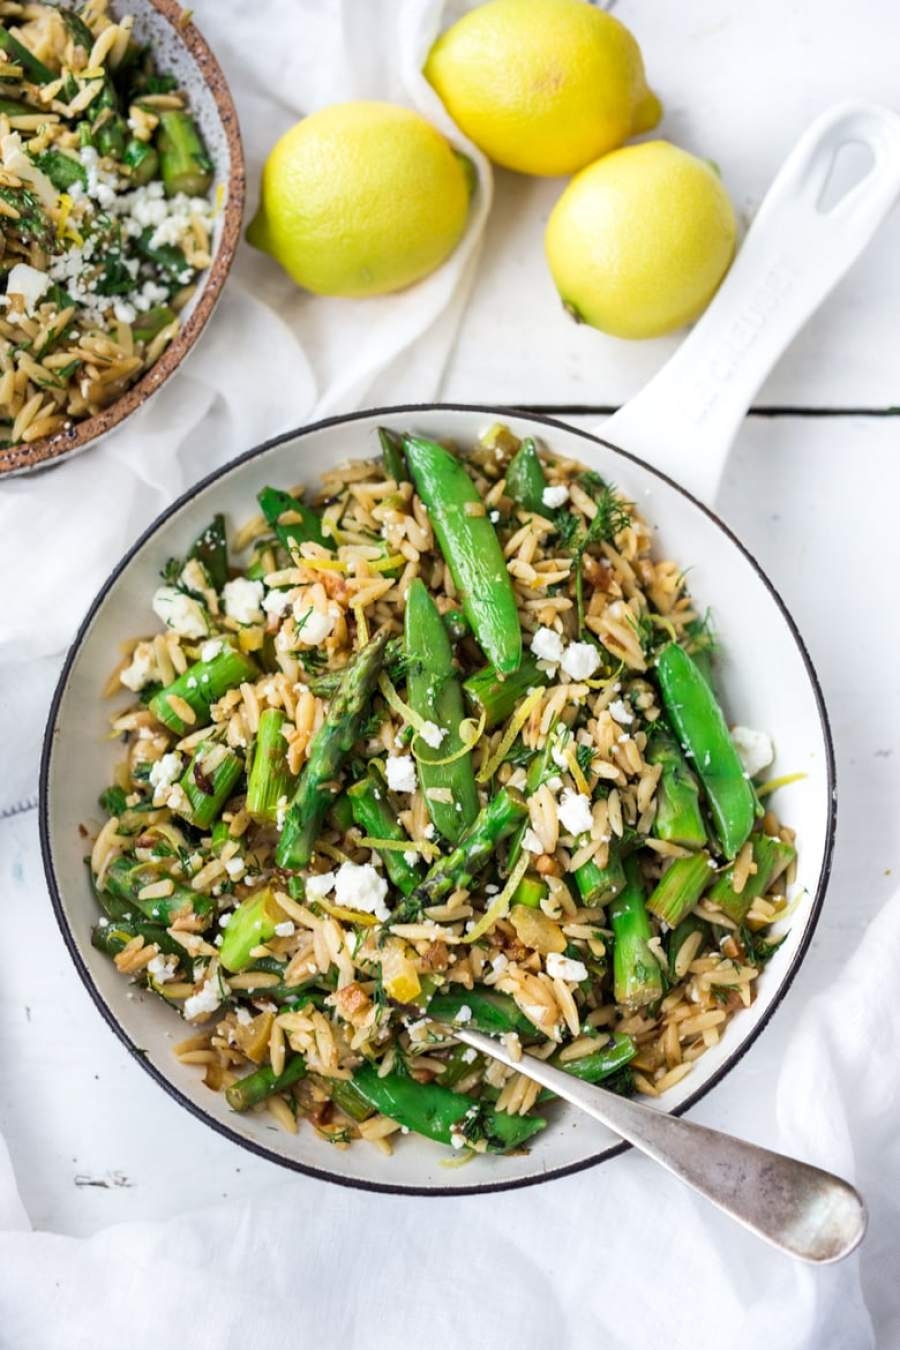 Spring Orzo Pasta with Asparagus, Lemon and Dill- serve this warm as quick flavorful entree or chilled as a side salad.